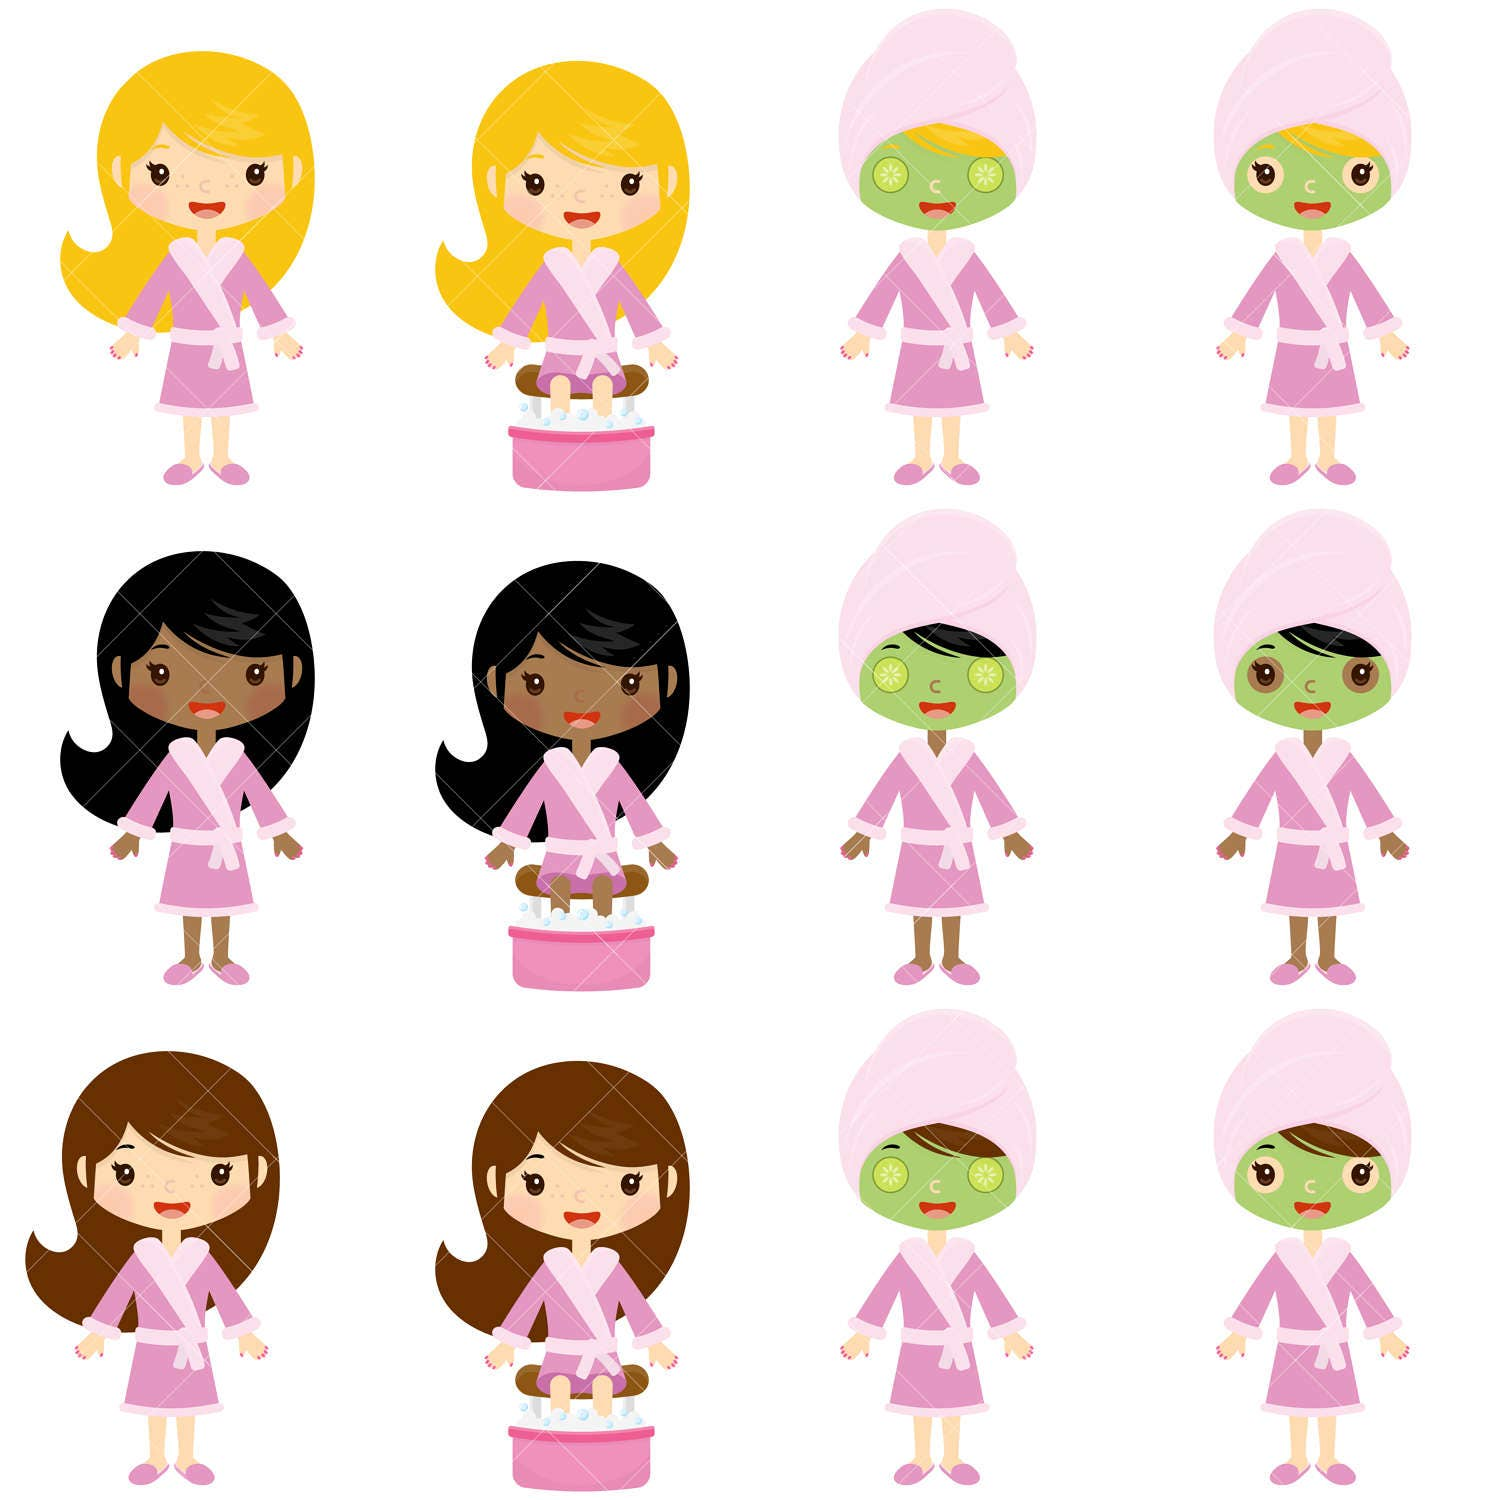 spa girls clipart spa party clip art from clipartisan on etsy studio rh etsystudio com spa clipart graphics spa clipart black and white